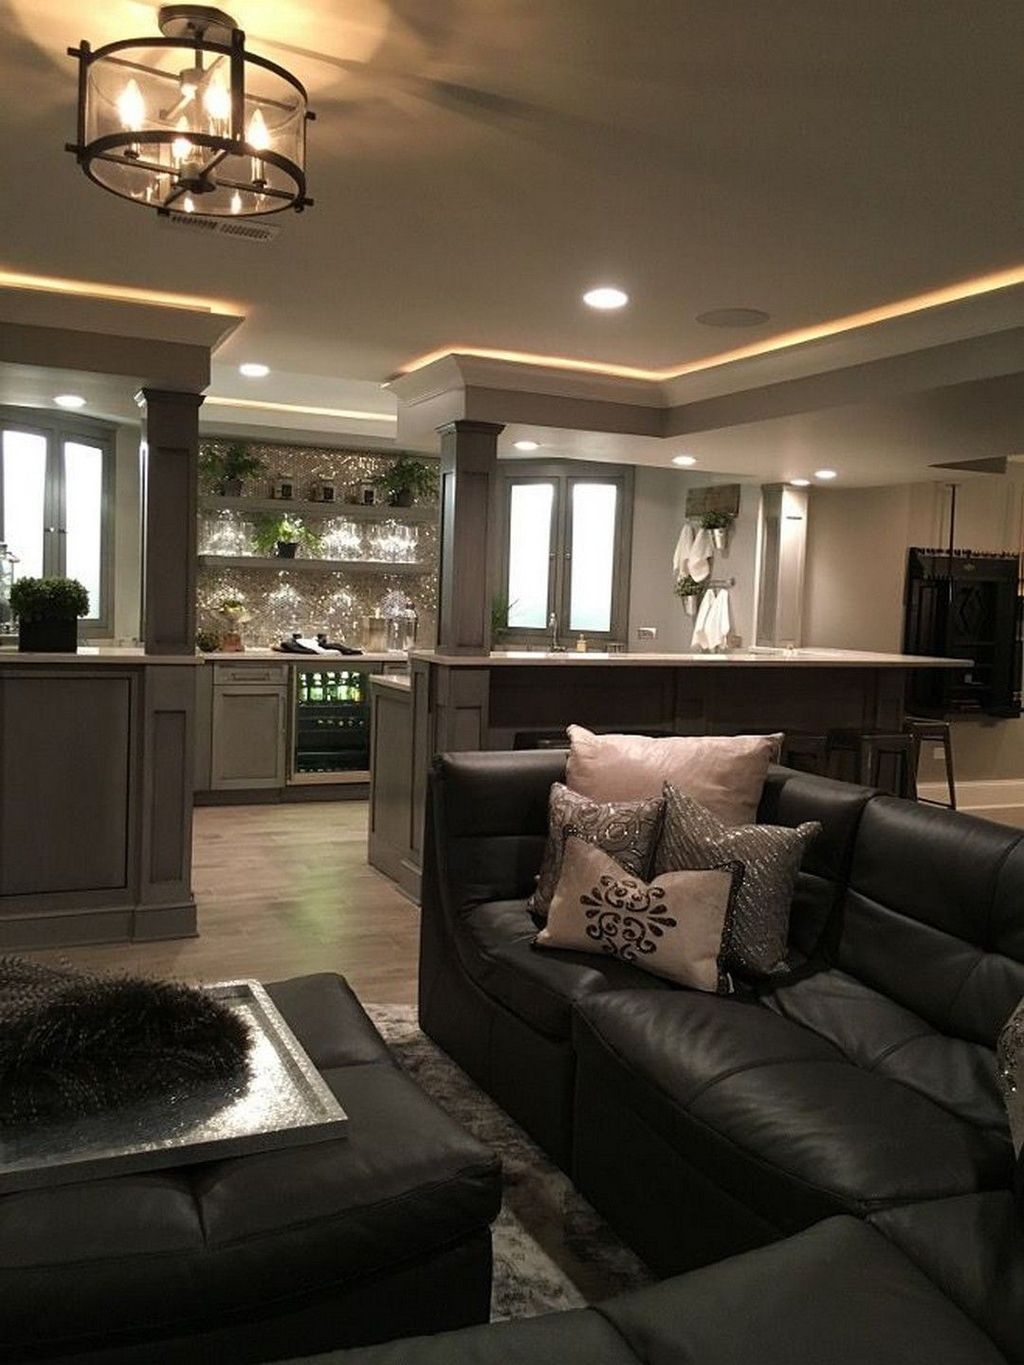 Adorable Basement Remodel Ideas For Upgrading Your Room Design 07